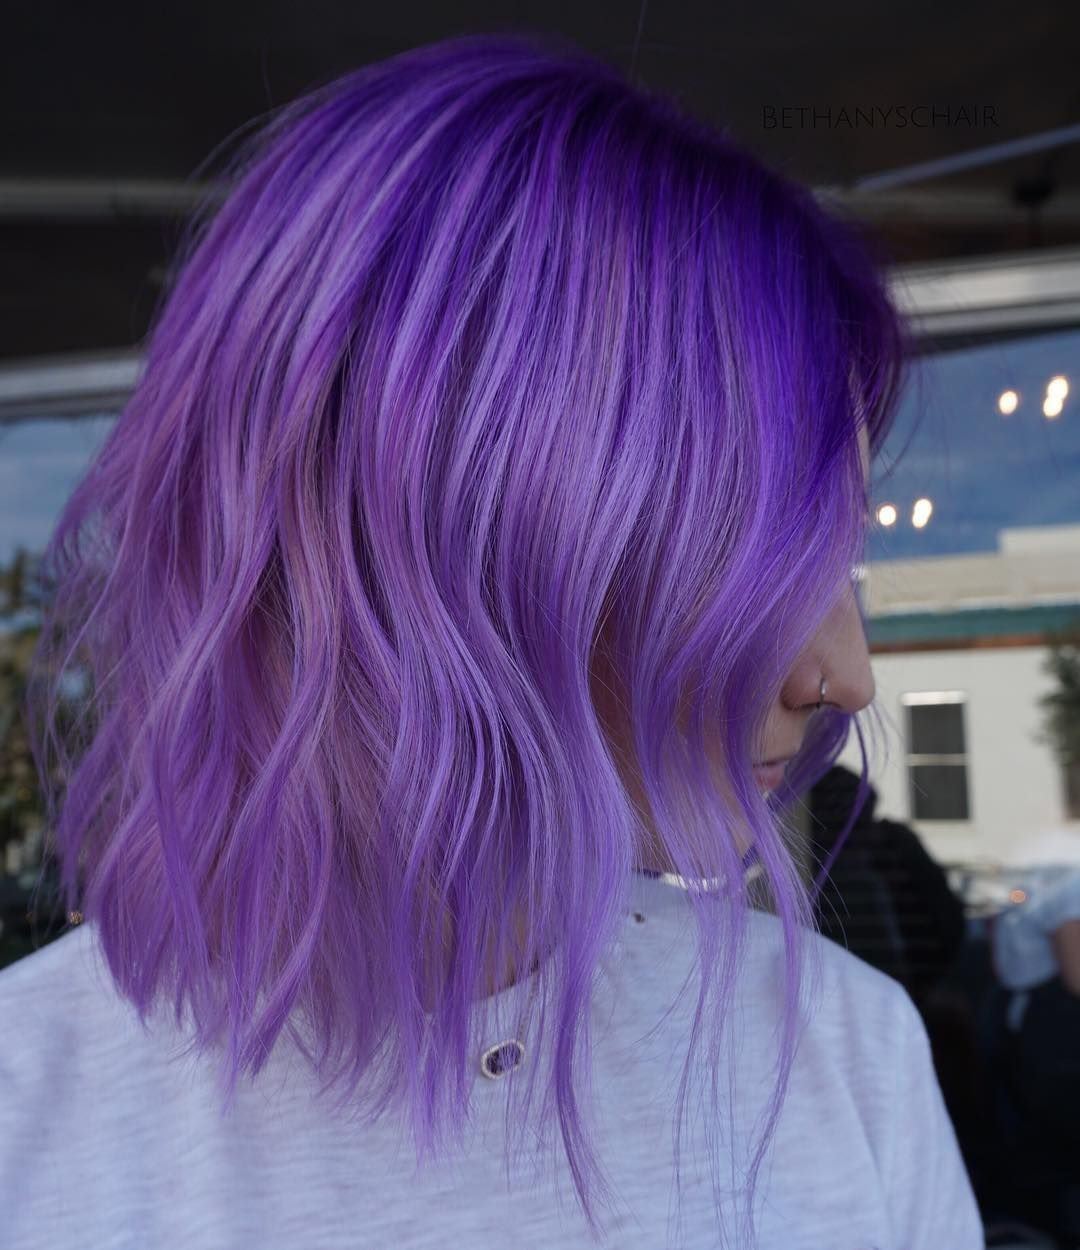 Incredible Violet Ombre Hair Color Trends in 2021